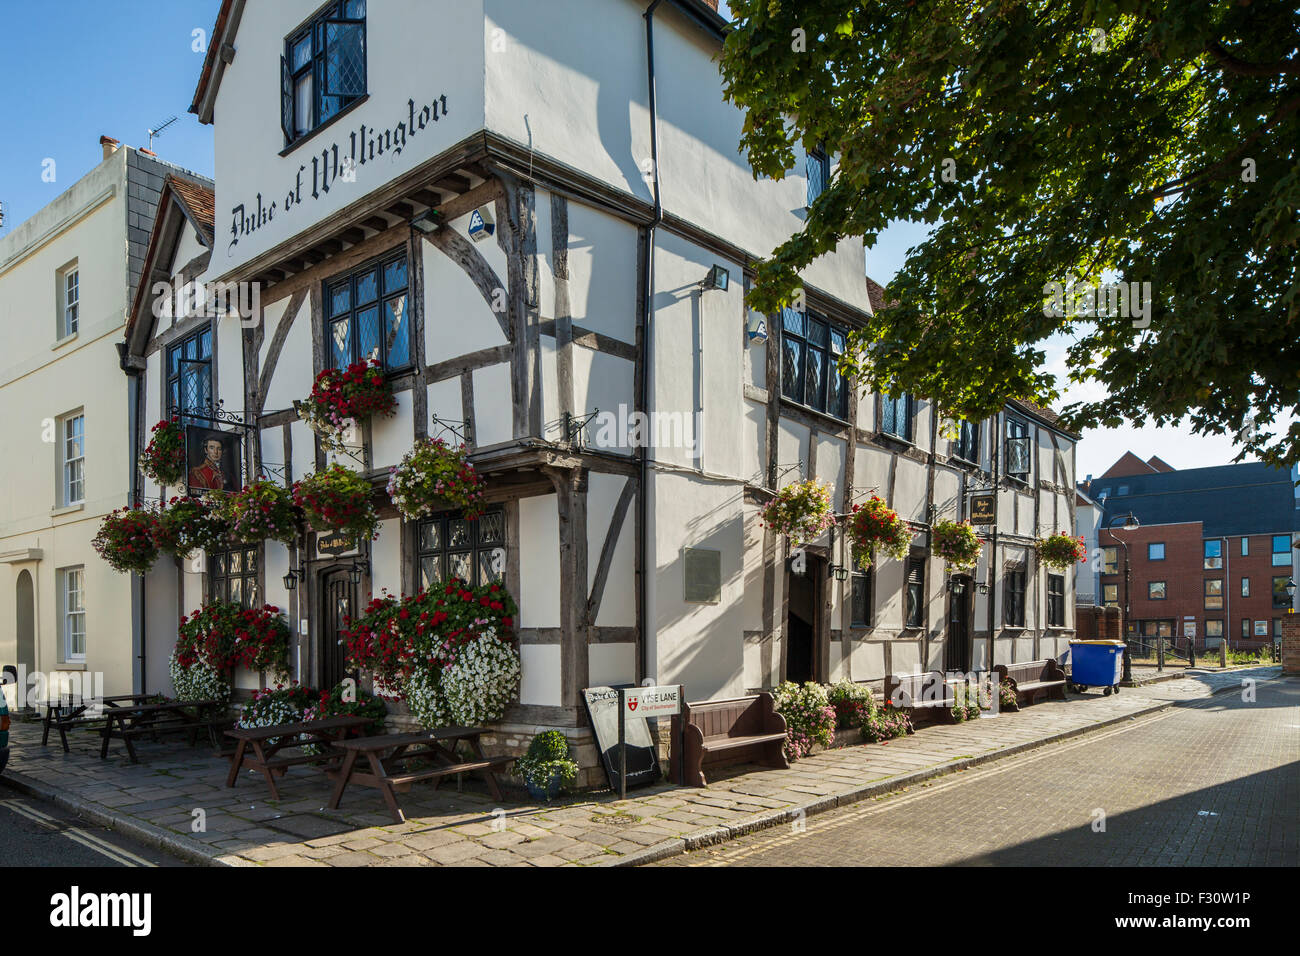 Duke of Wellington pub in Southampton, Hampshire, England. - Stock Image